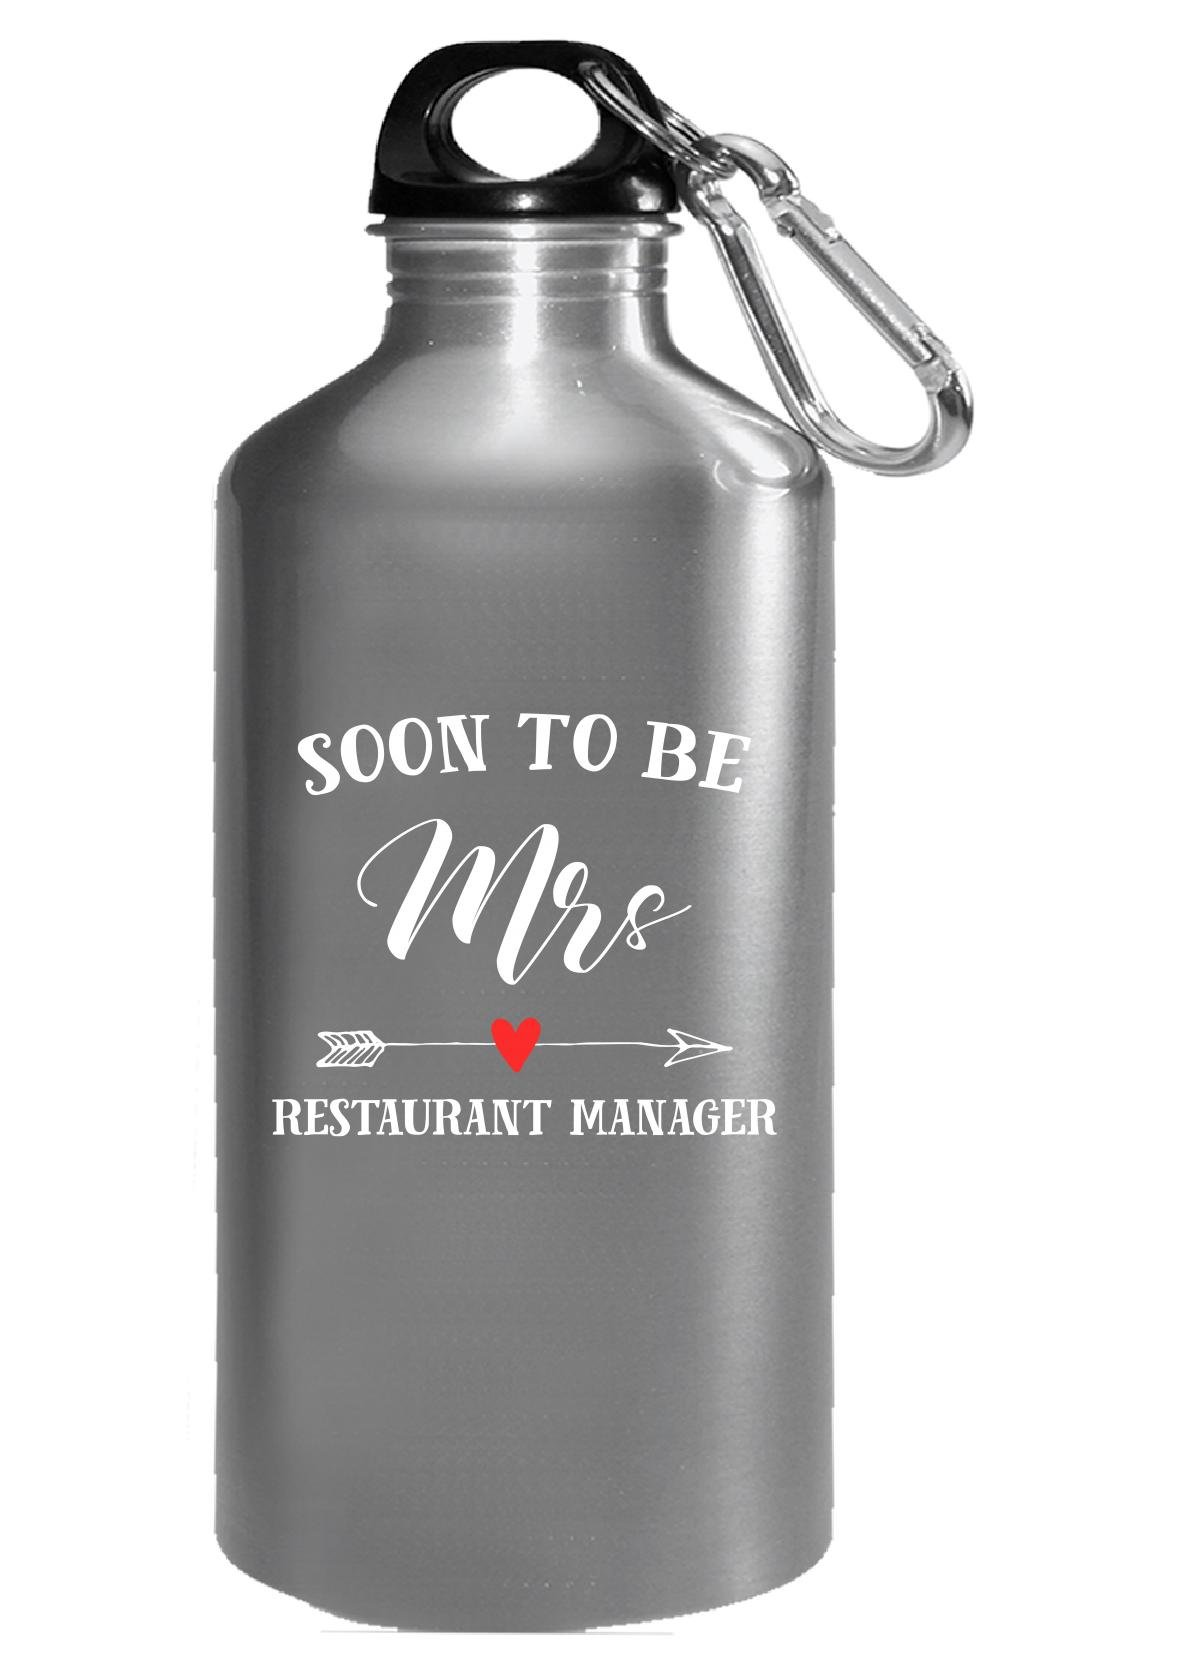 Soon To Be Mrs Restaurant Manager Womens Bridal Wedding Gift - Water Bottle